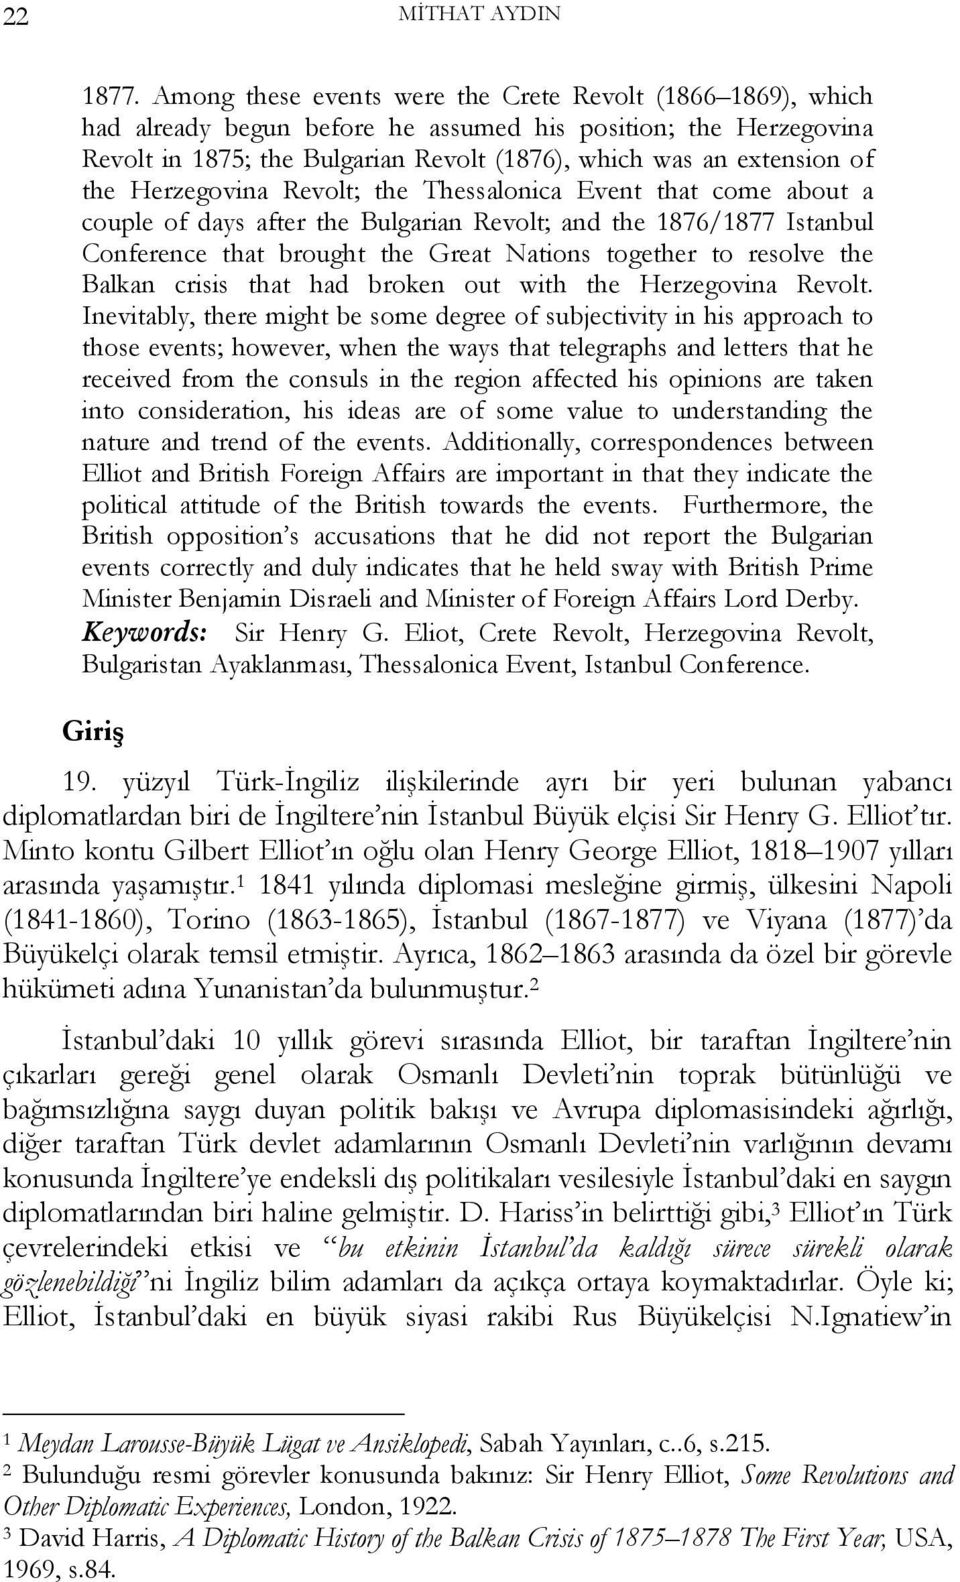 the Herzegovina Revolt; the Thessalonica Event that come about a couple of days after the Bulgarian Revolt; and the 1876/1877 Istanbul Conference that brought the Great Nations together to resolve